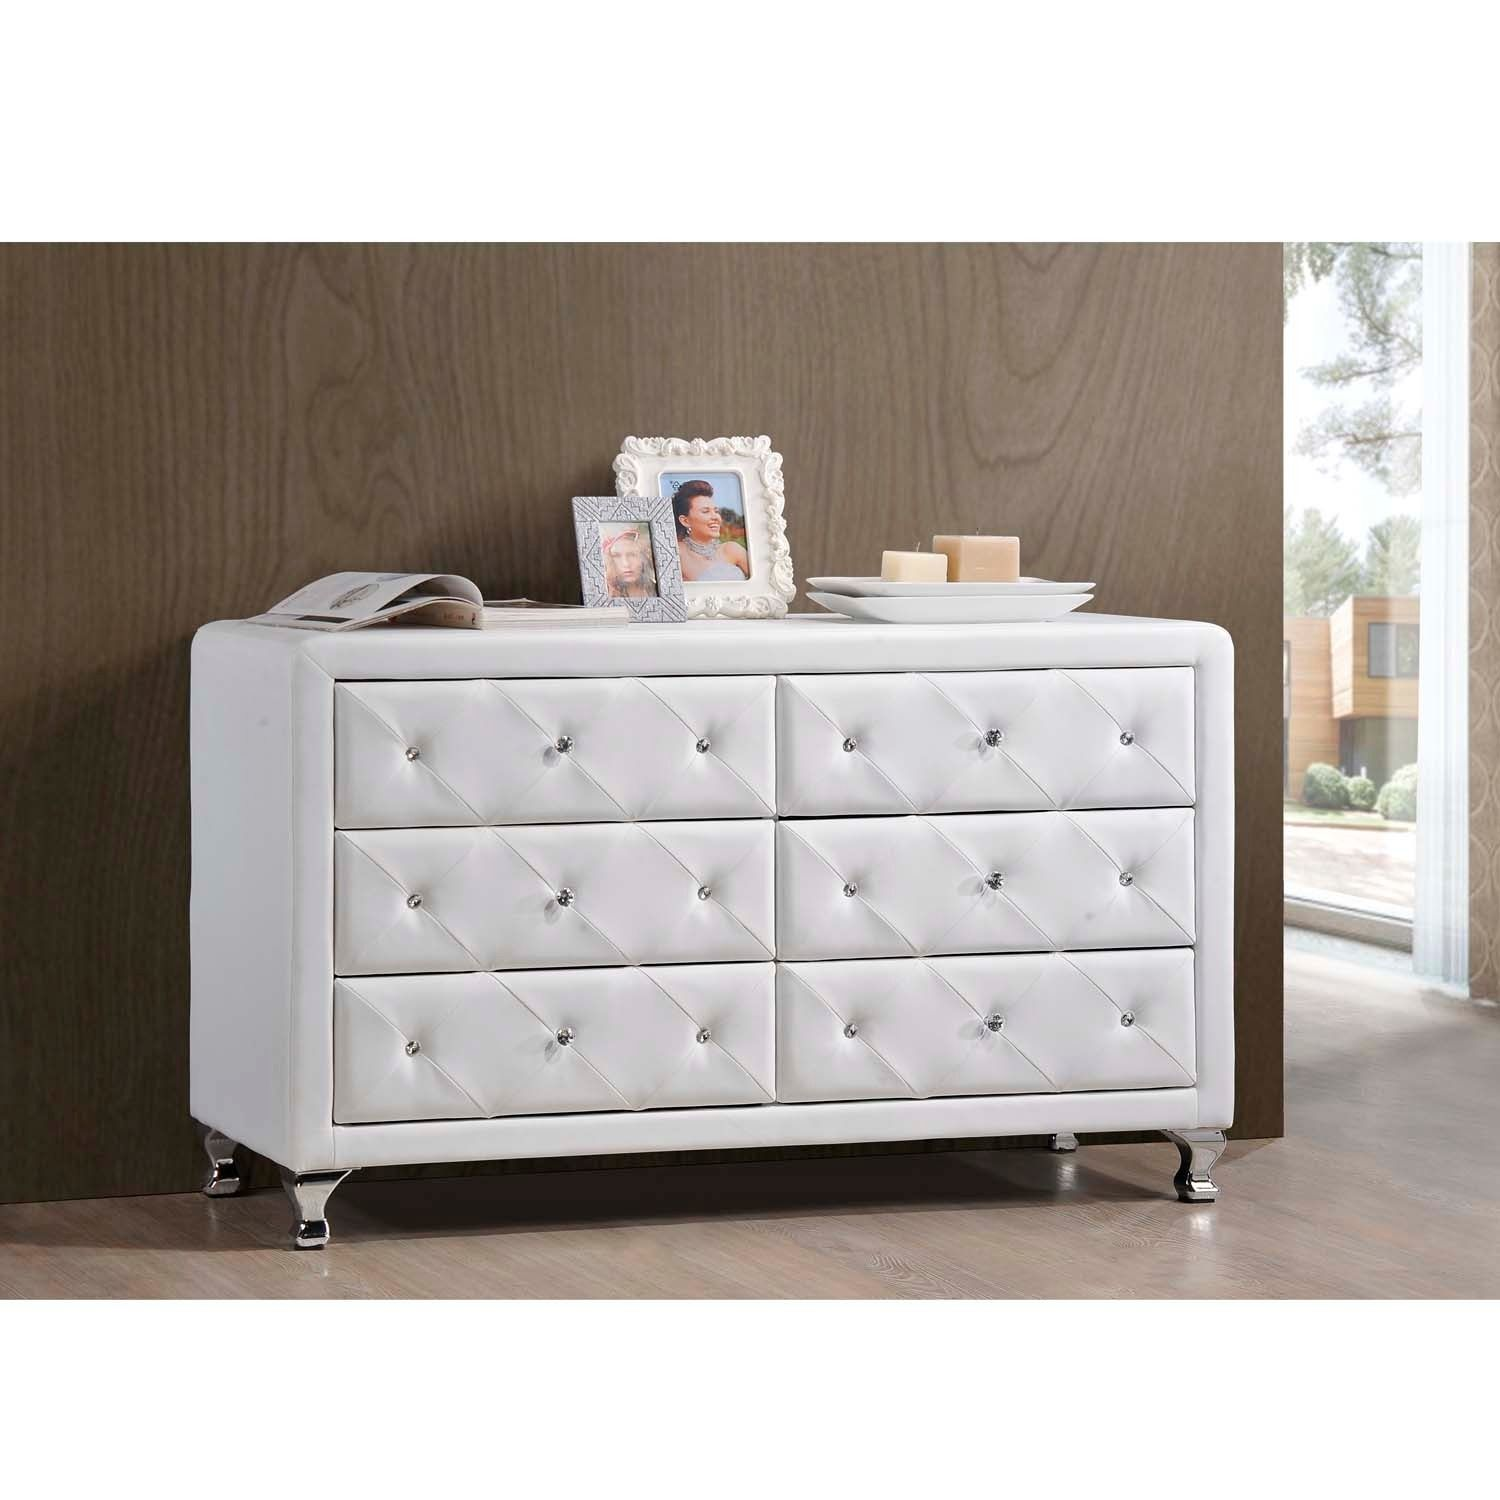 Overstock Com Online Shopping Bedding Furniture Electronics Jewelry Clothing More Modern Dresser Shabby Chic Dresser Wholesale Interiors [ 1500 x 1500 Pixel ]